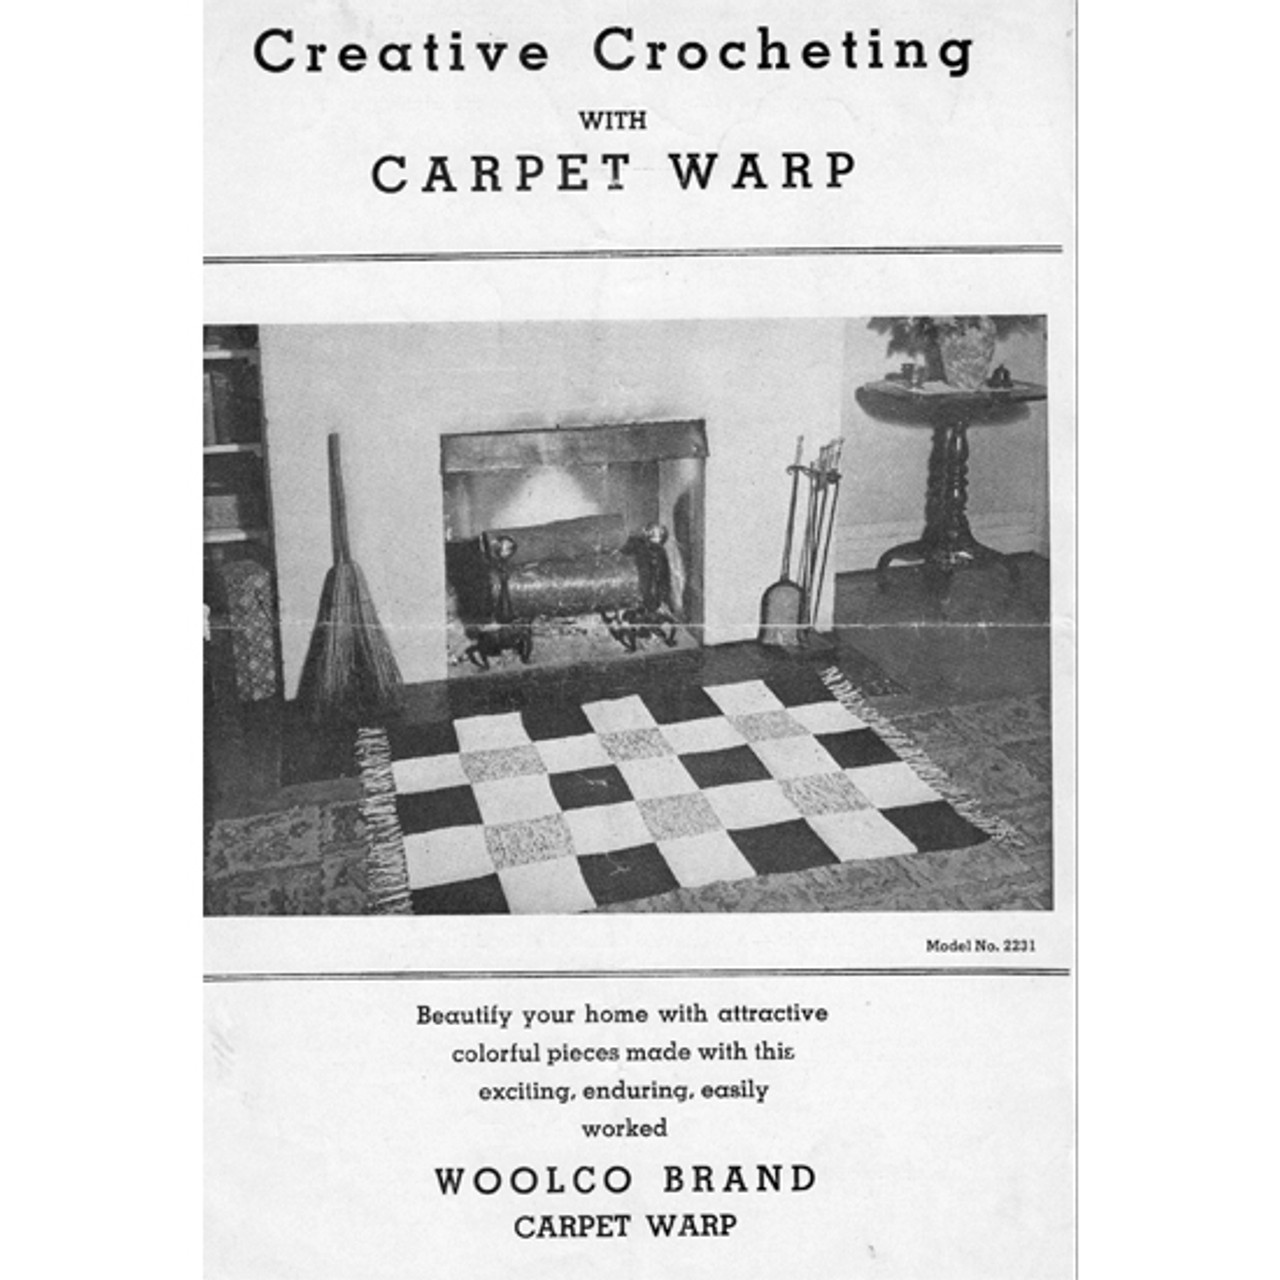 Crochet Checkerboard Rug Pattern in Carpet Warp